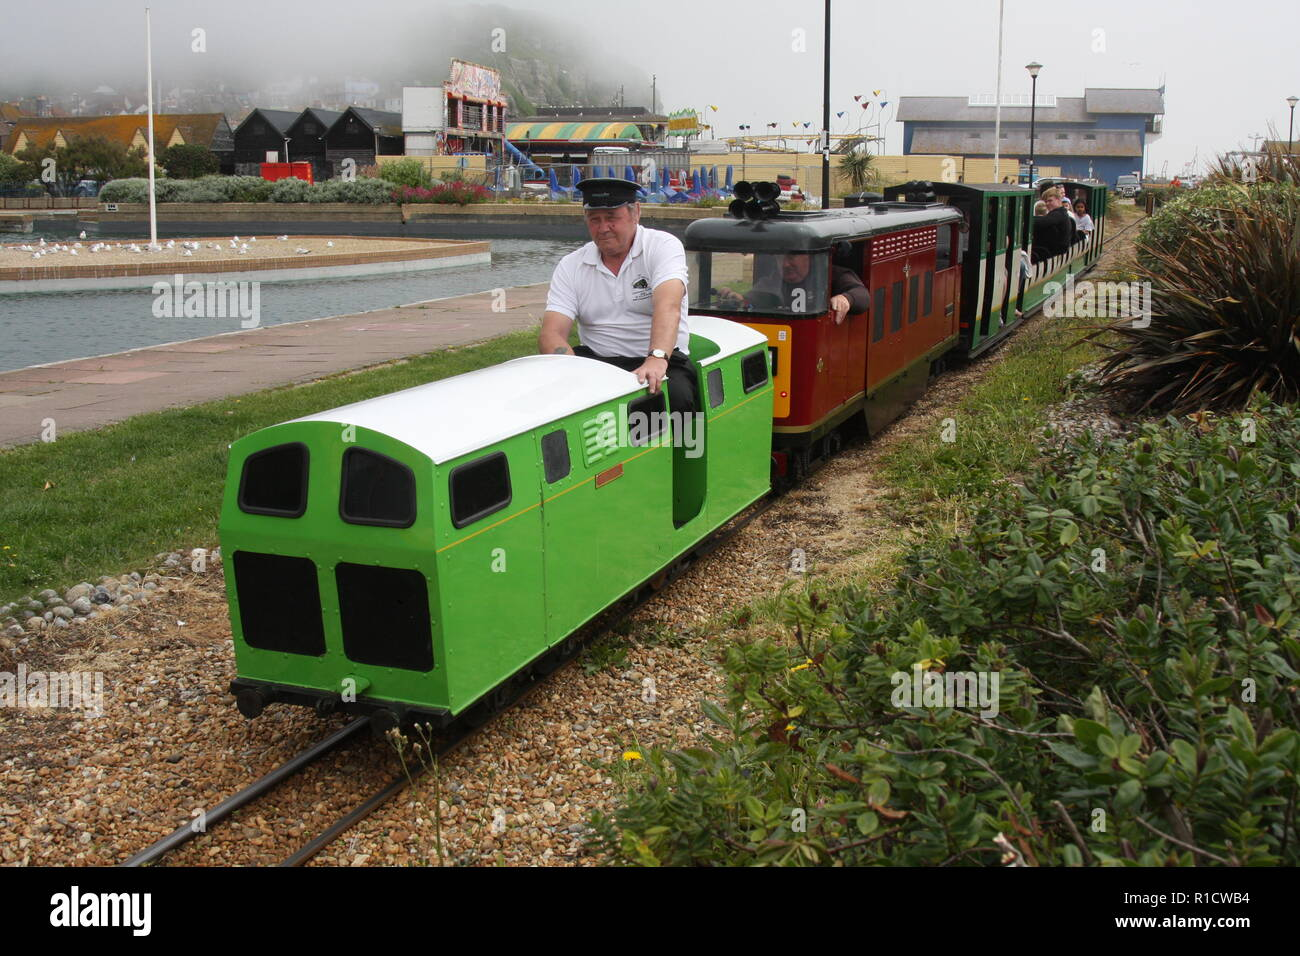 A MINIATURE TRAIN RUNNING AT HASTINGS MINIATURE RAILWAY